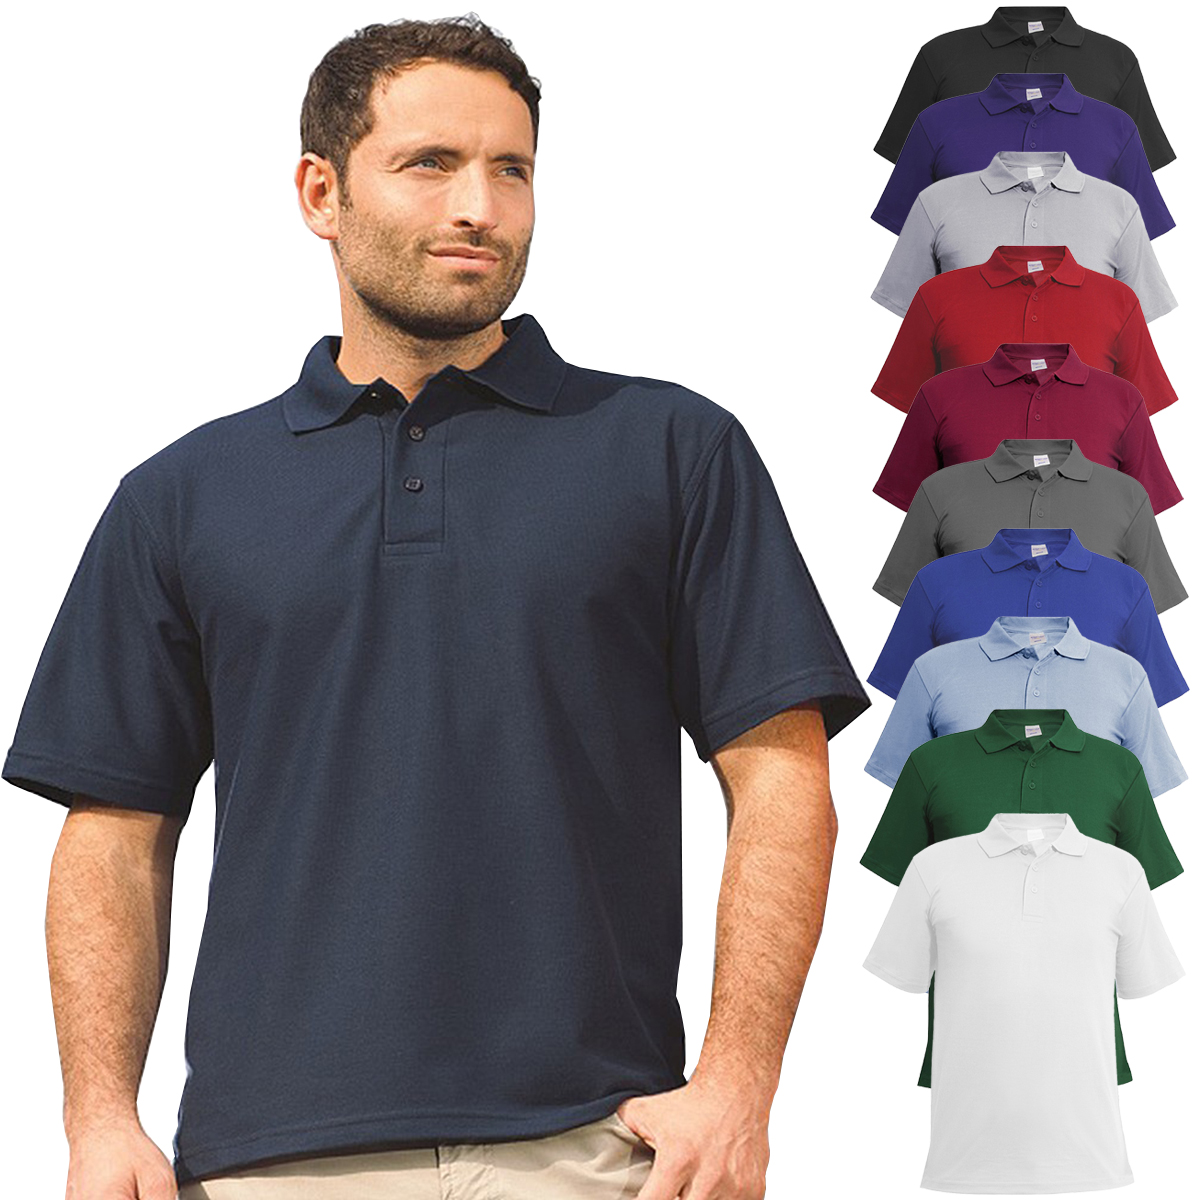 Mens Classic Polo Top Plus Size T Shirt Plain Shirt Big